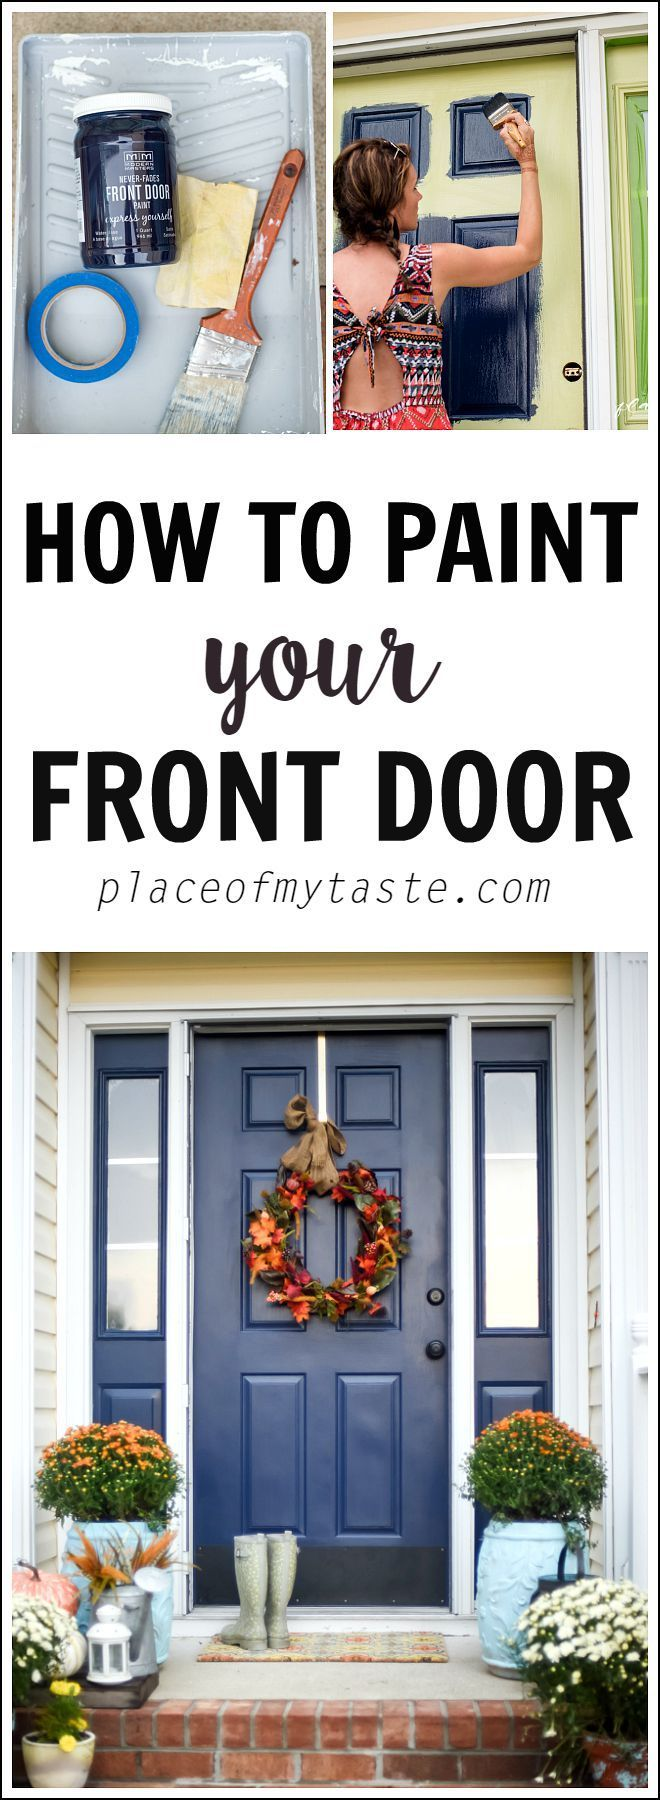 Painted front door designs - Great Tips For Painting Your Front Door We Love This Deep Blue Color To Make